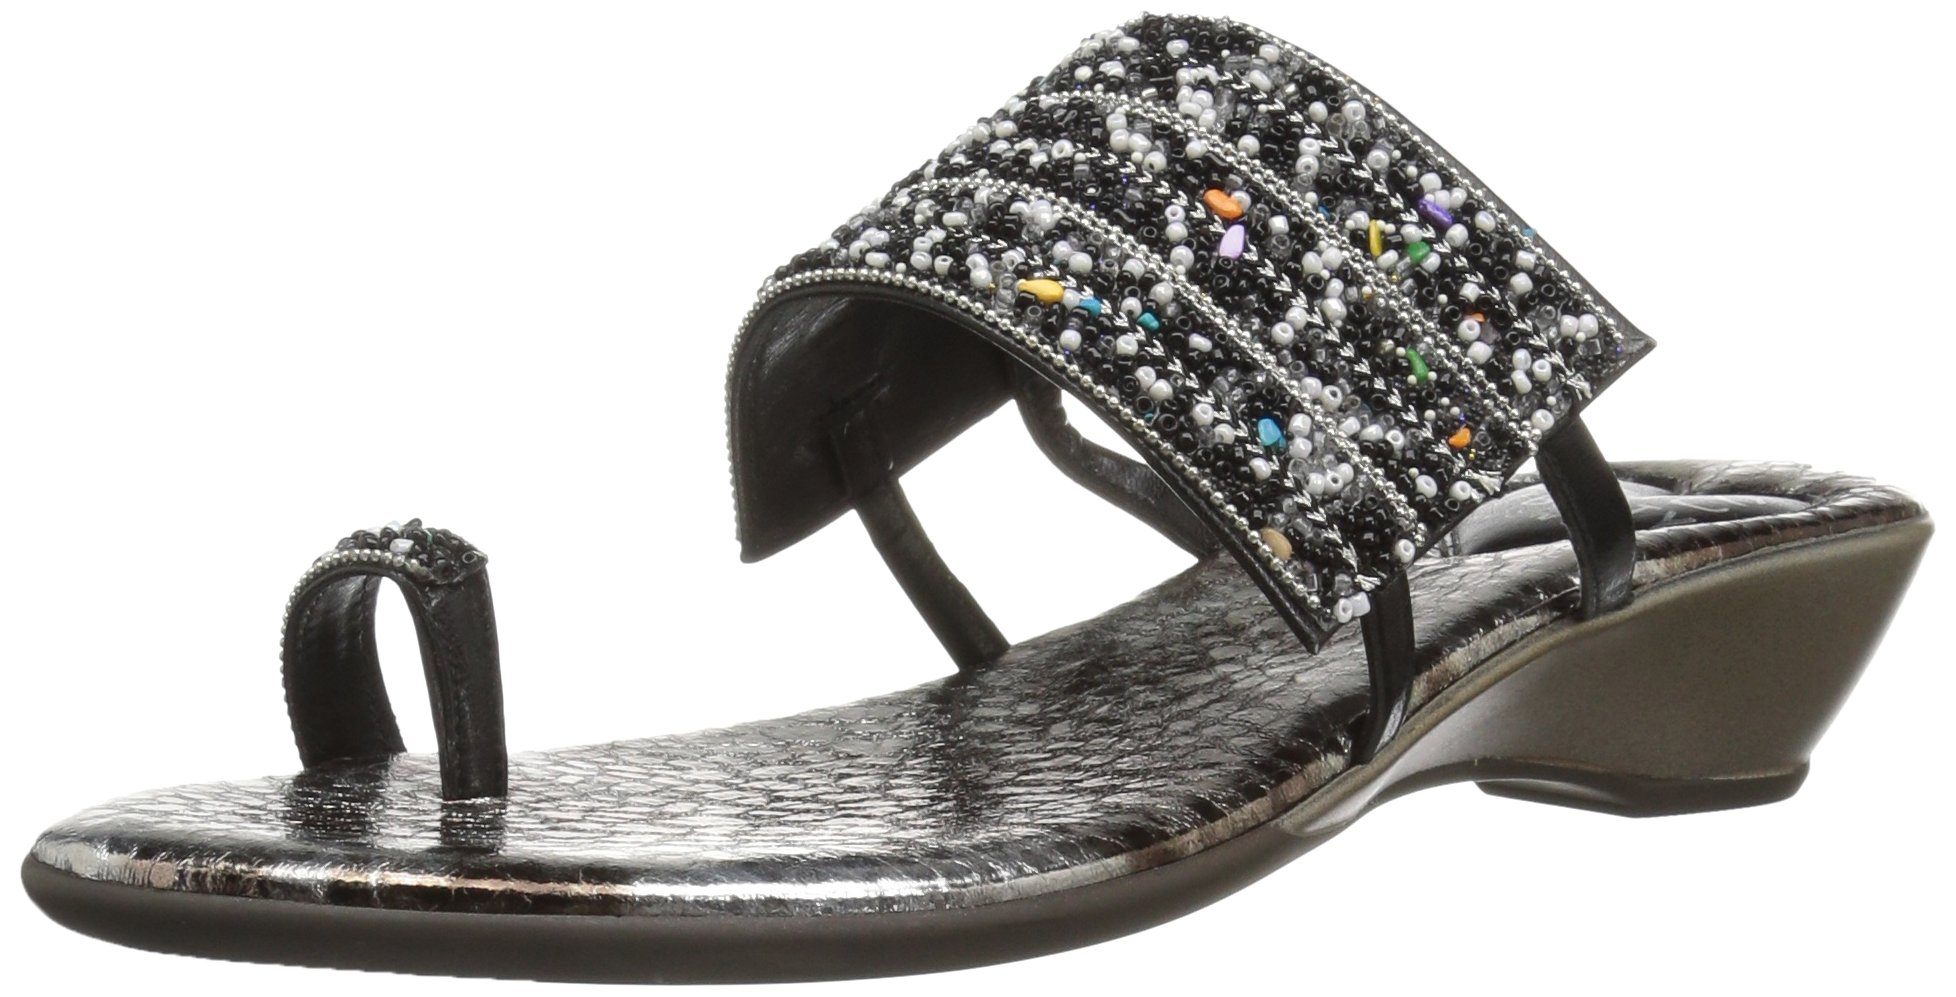 Love & Liberty Women's Sammy-Ll Toe Ring Sandal, Black, 7 M US by Love & Liberty (Image #1)